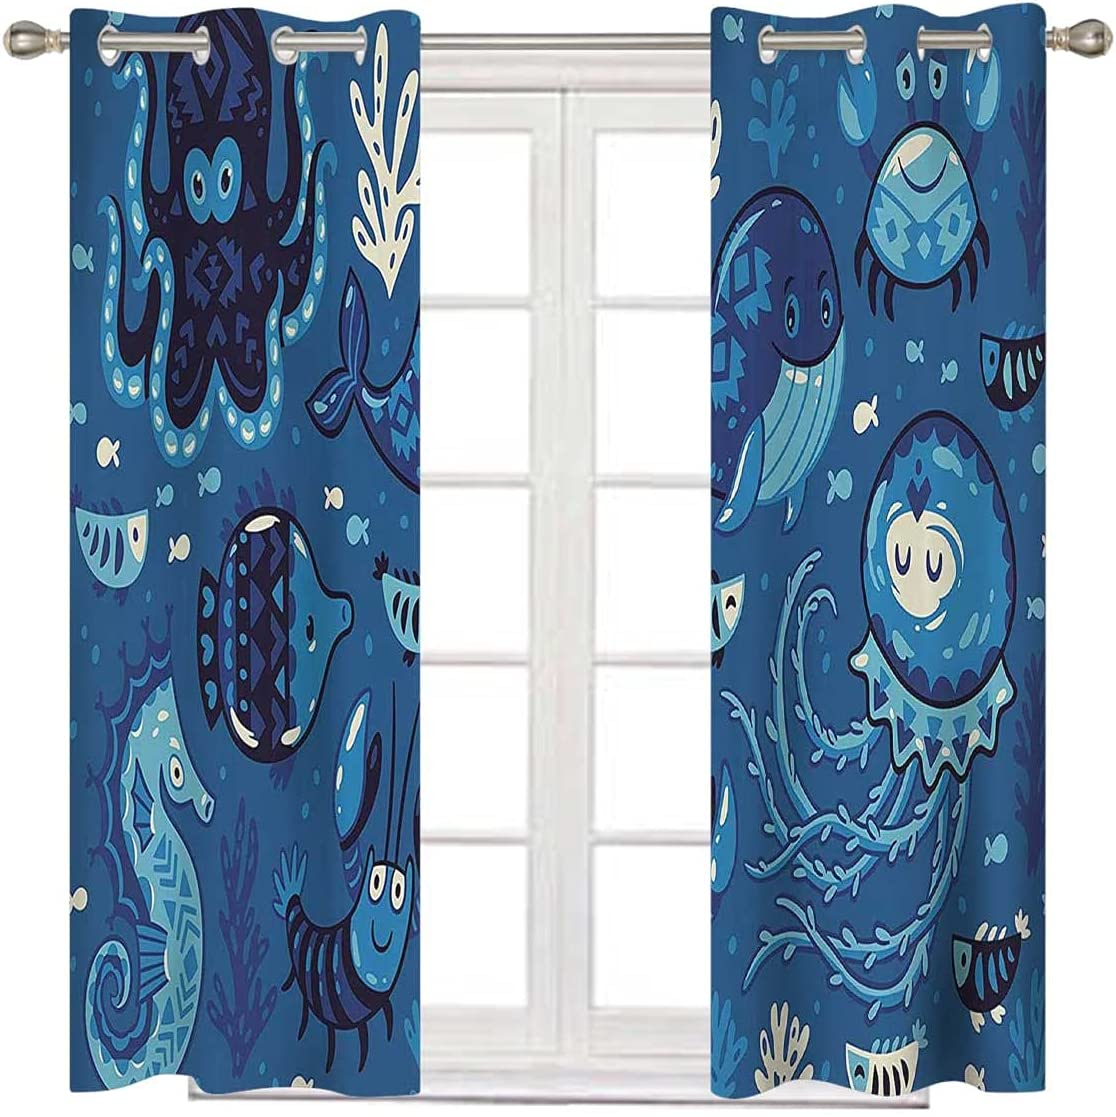 Ocean Decor Window Curtains Max 60% OFF for Bedroom Blac Inches Blue Credence 72 Long